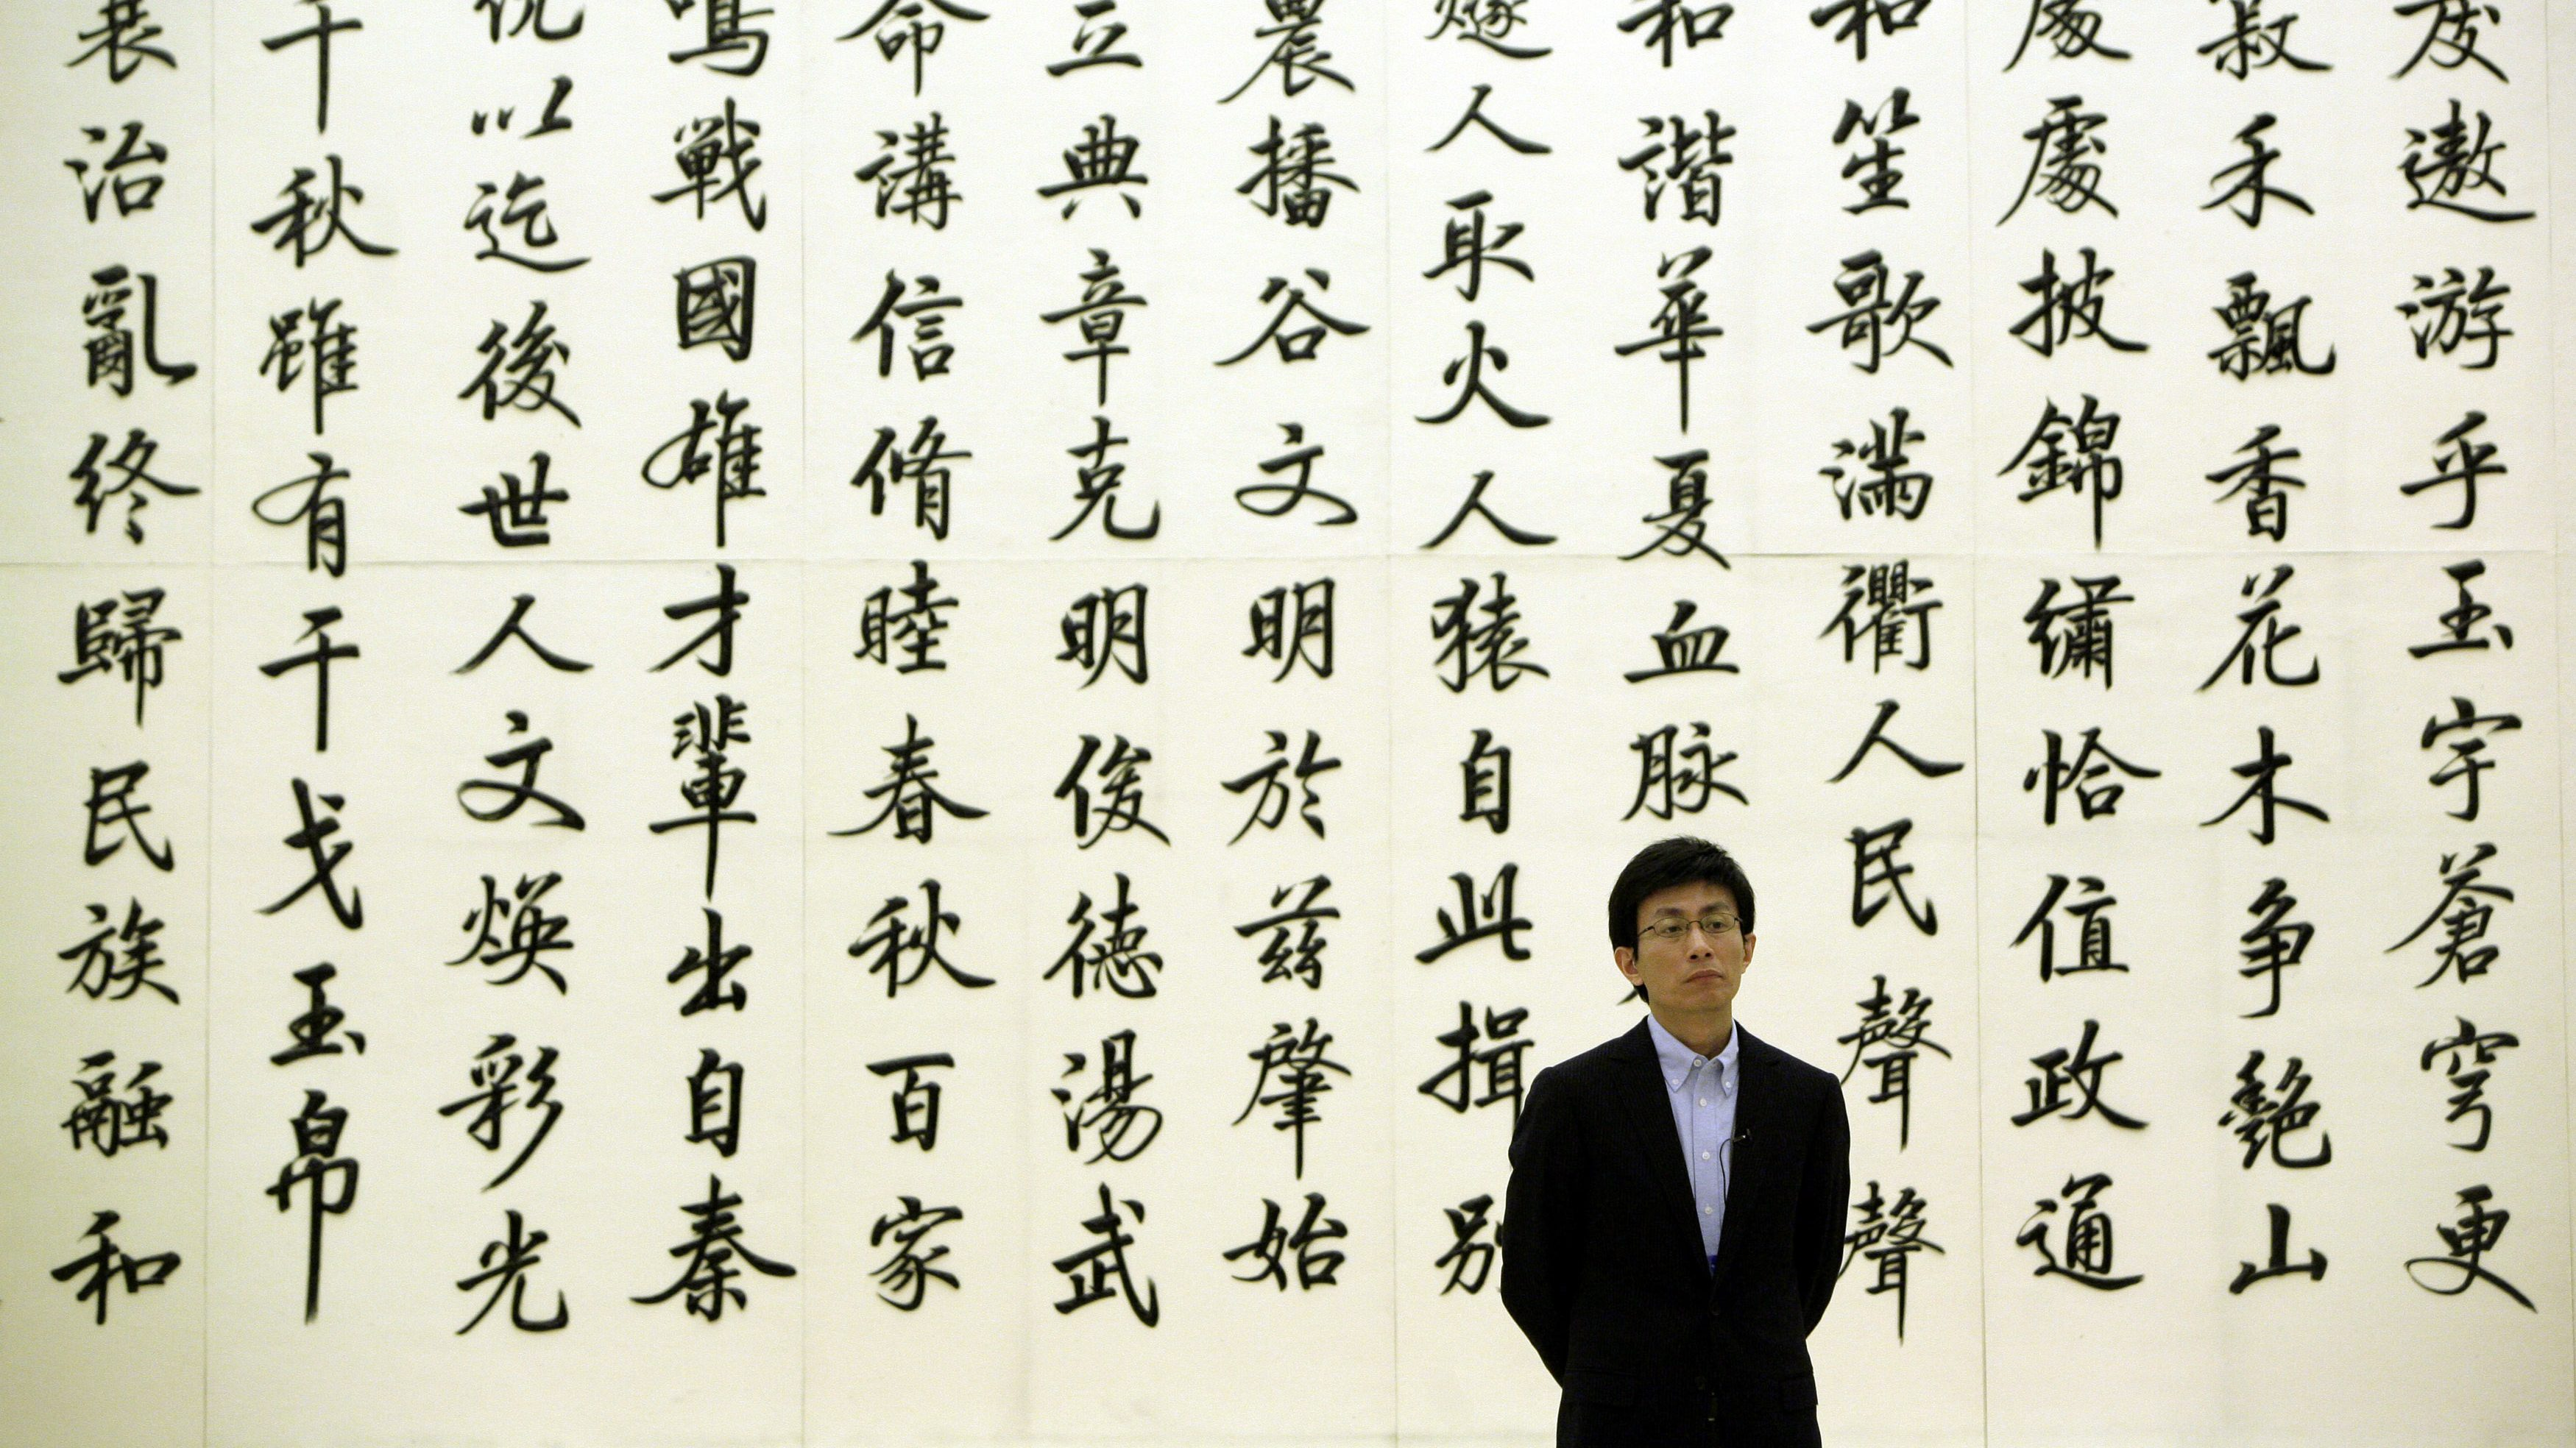 Choosing an English name? Why I decided to use my Chinese name — Quartz